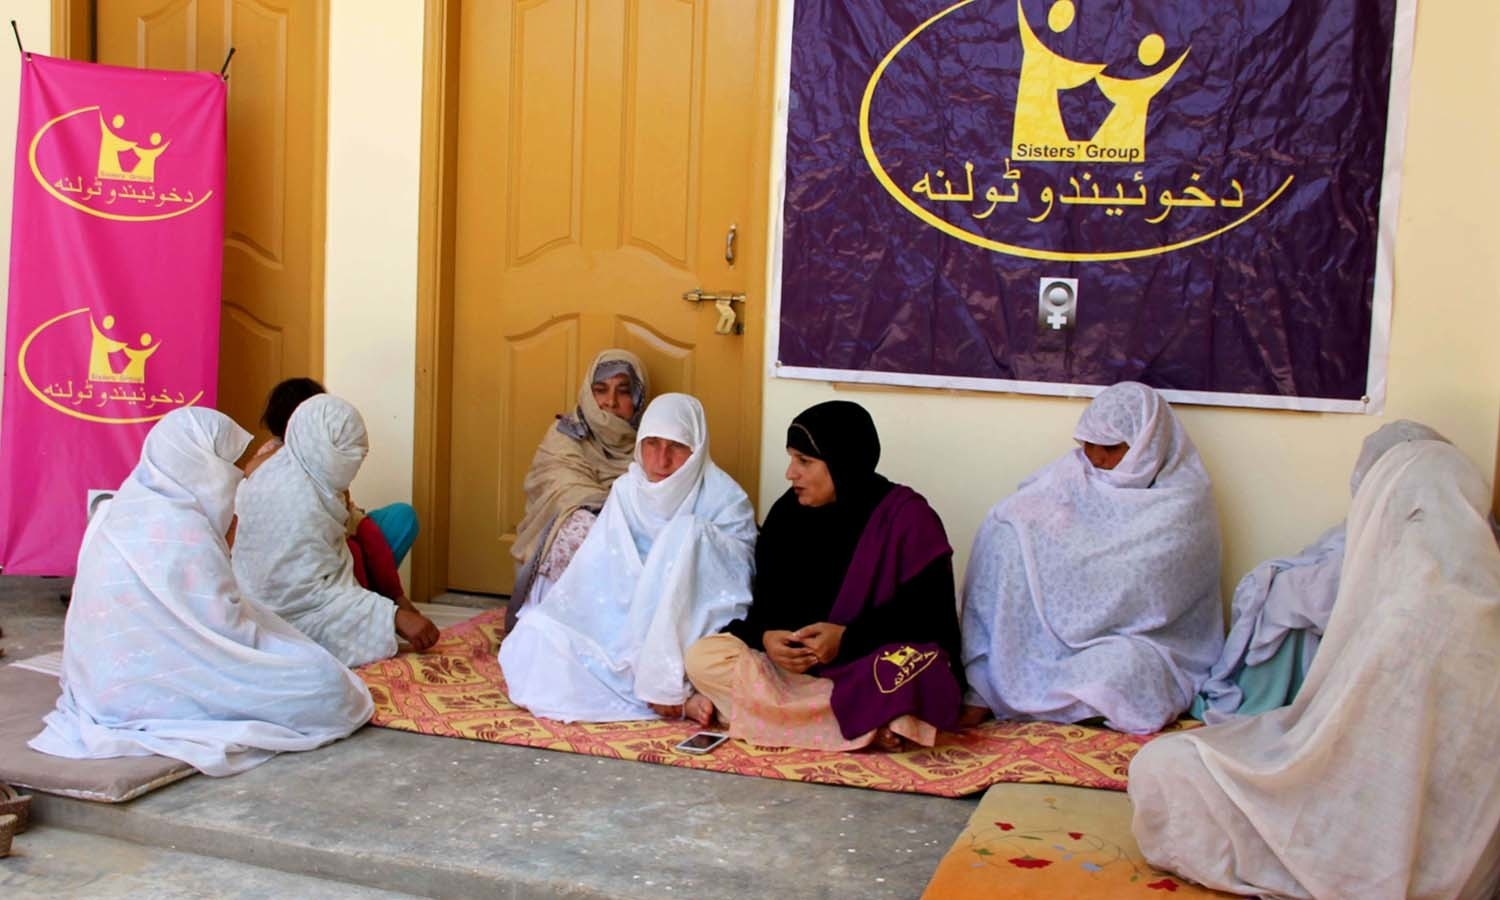 Tabassum Adnan, campaigning for women's rights with other women from the valley. -Photo by the author